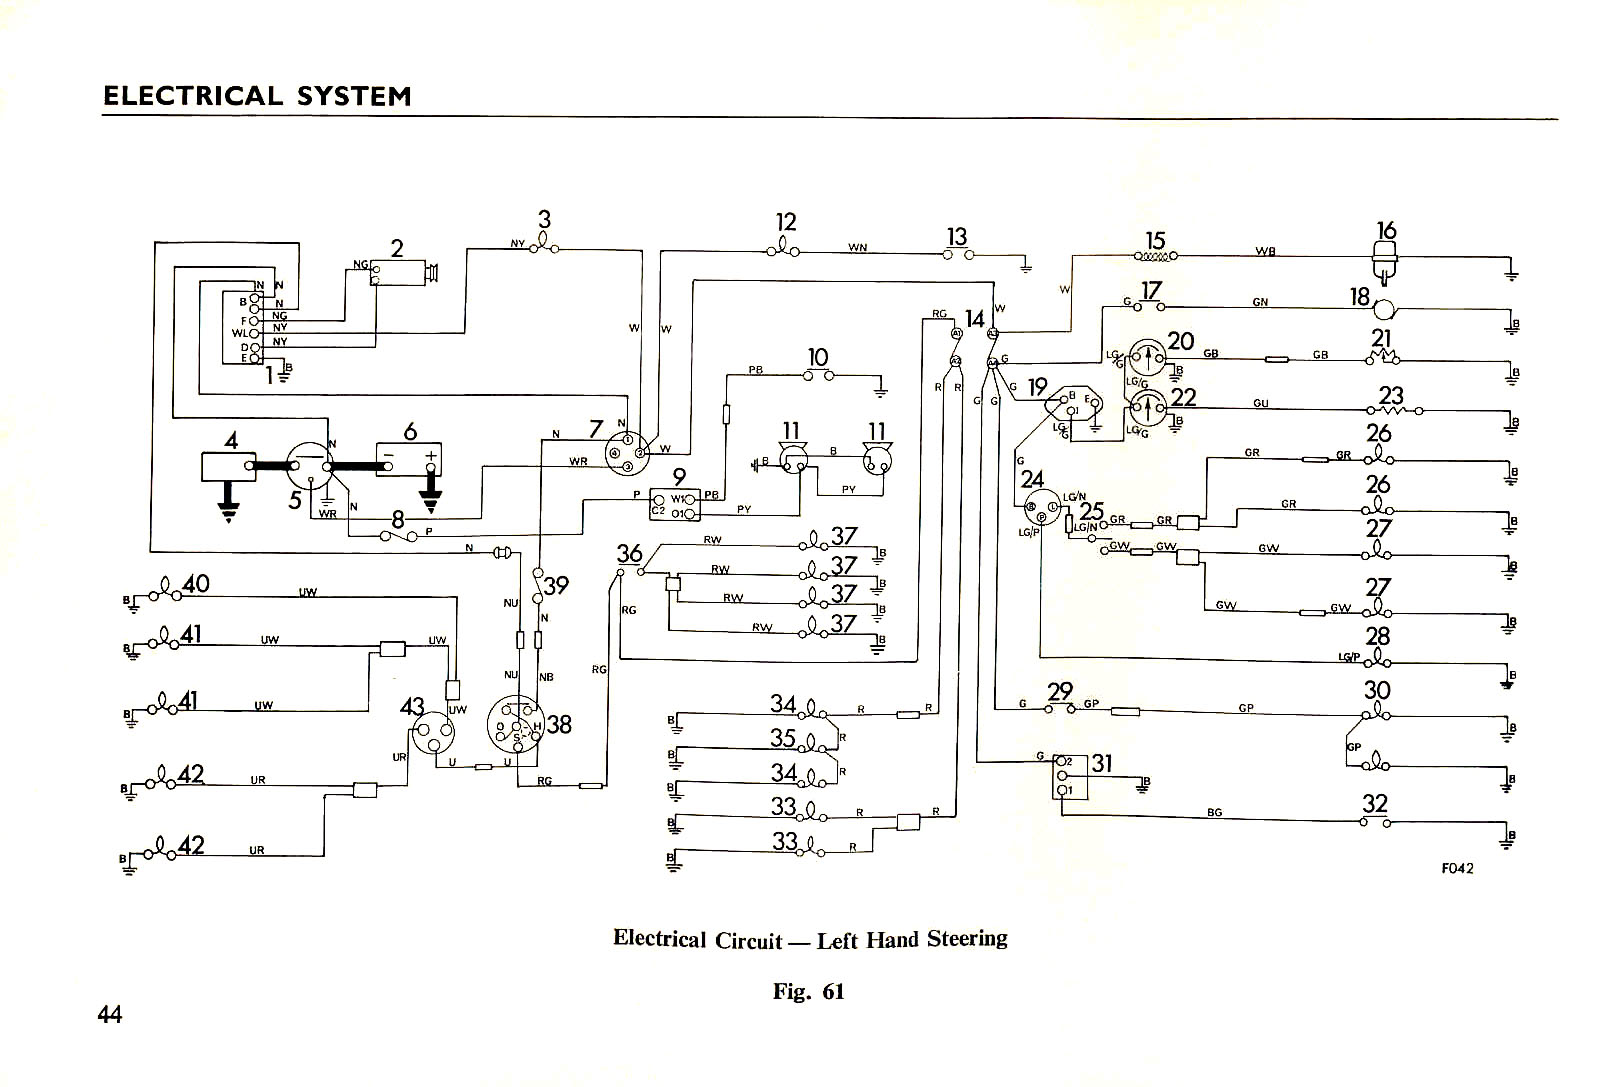 T120 Wiring Diagram - Rk.bl-fotografie.de • on battery diagram, triumph controller diagram, triumph chopper wiring for, triumph frame diagram, triumph 650 wiring harness, triumph parts diagram, triumph clutch diagram,